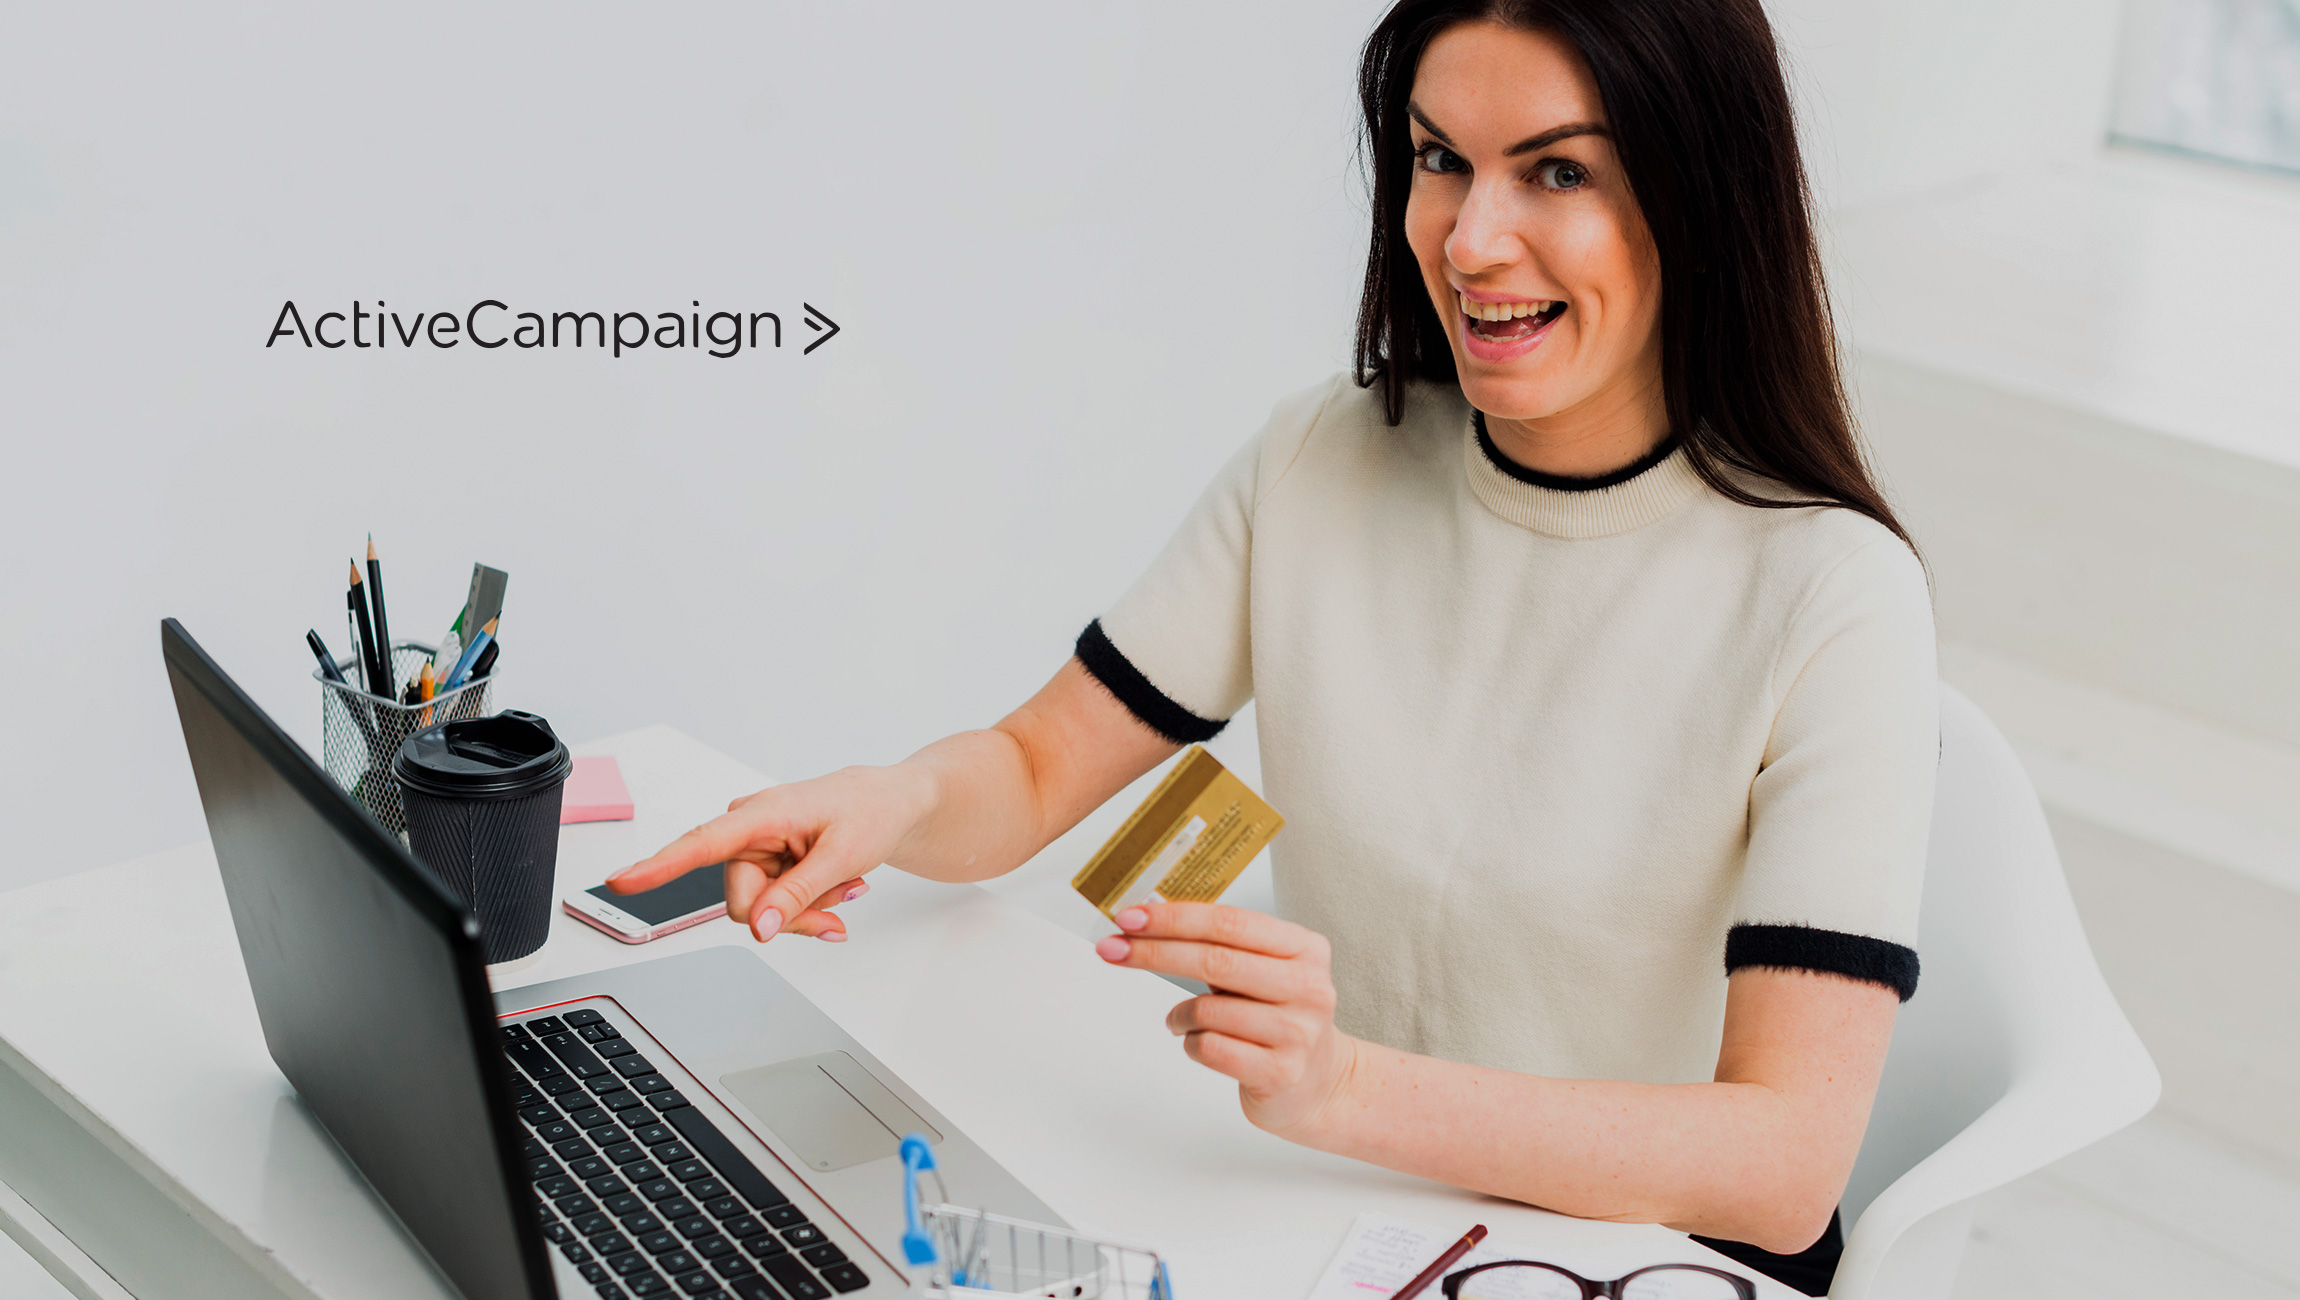 New Tool from ActiveCampaign Gives Ecommerce Businesses the Insights They Need to Increase Sales